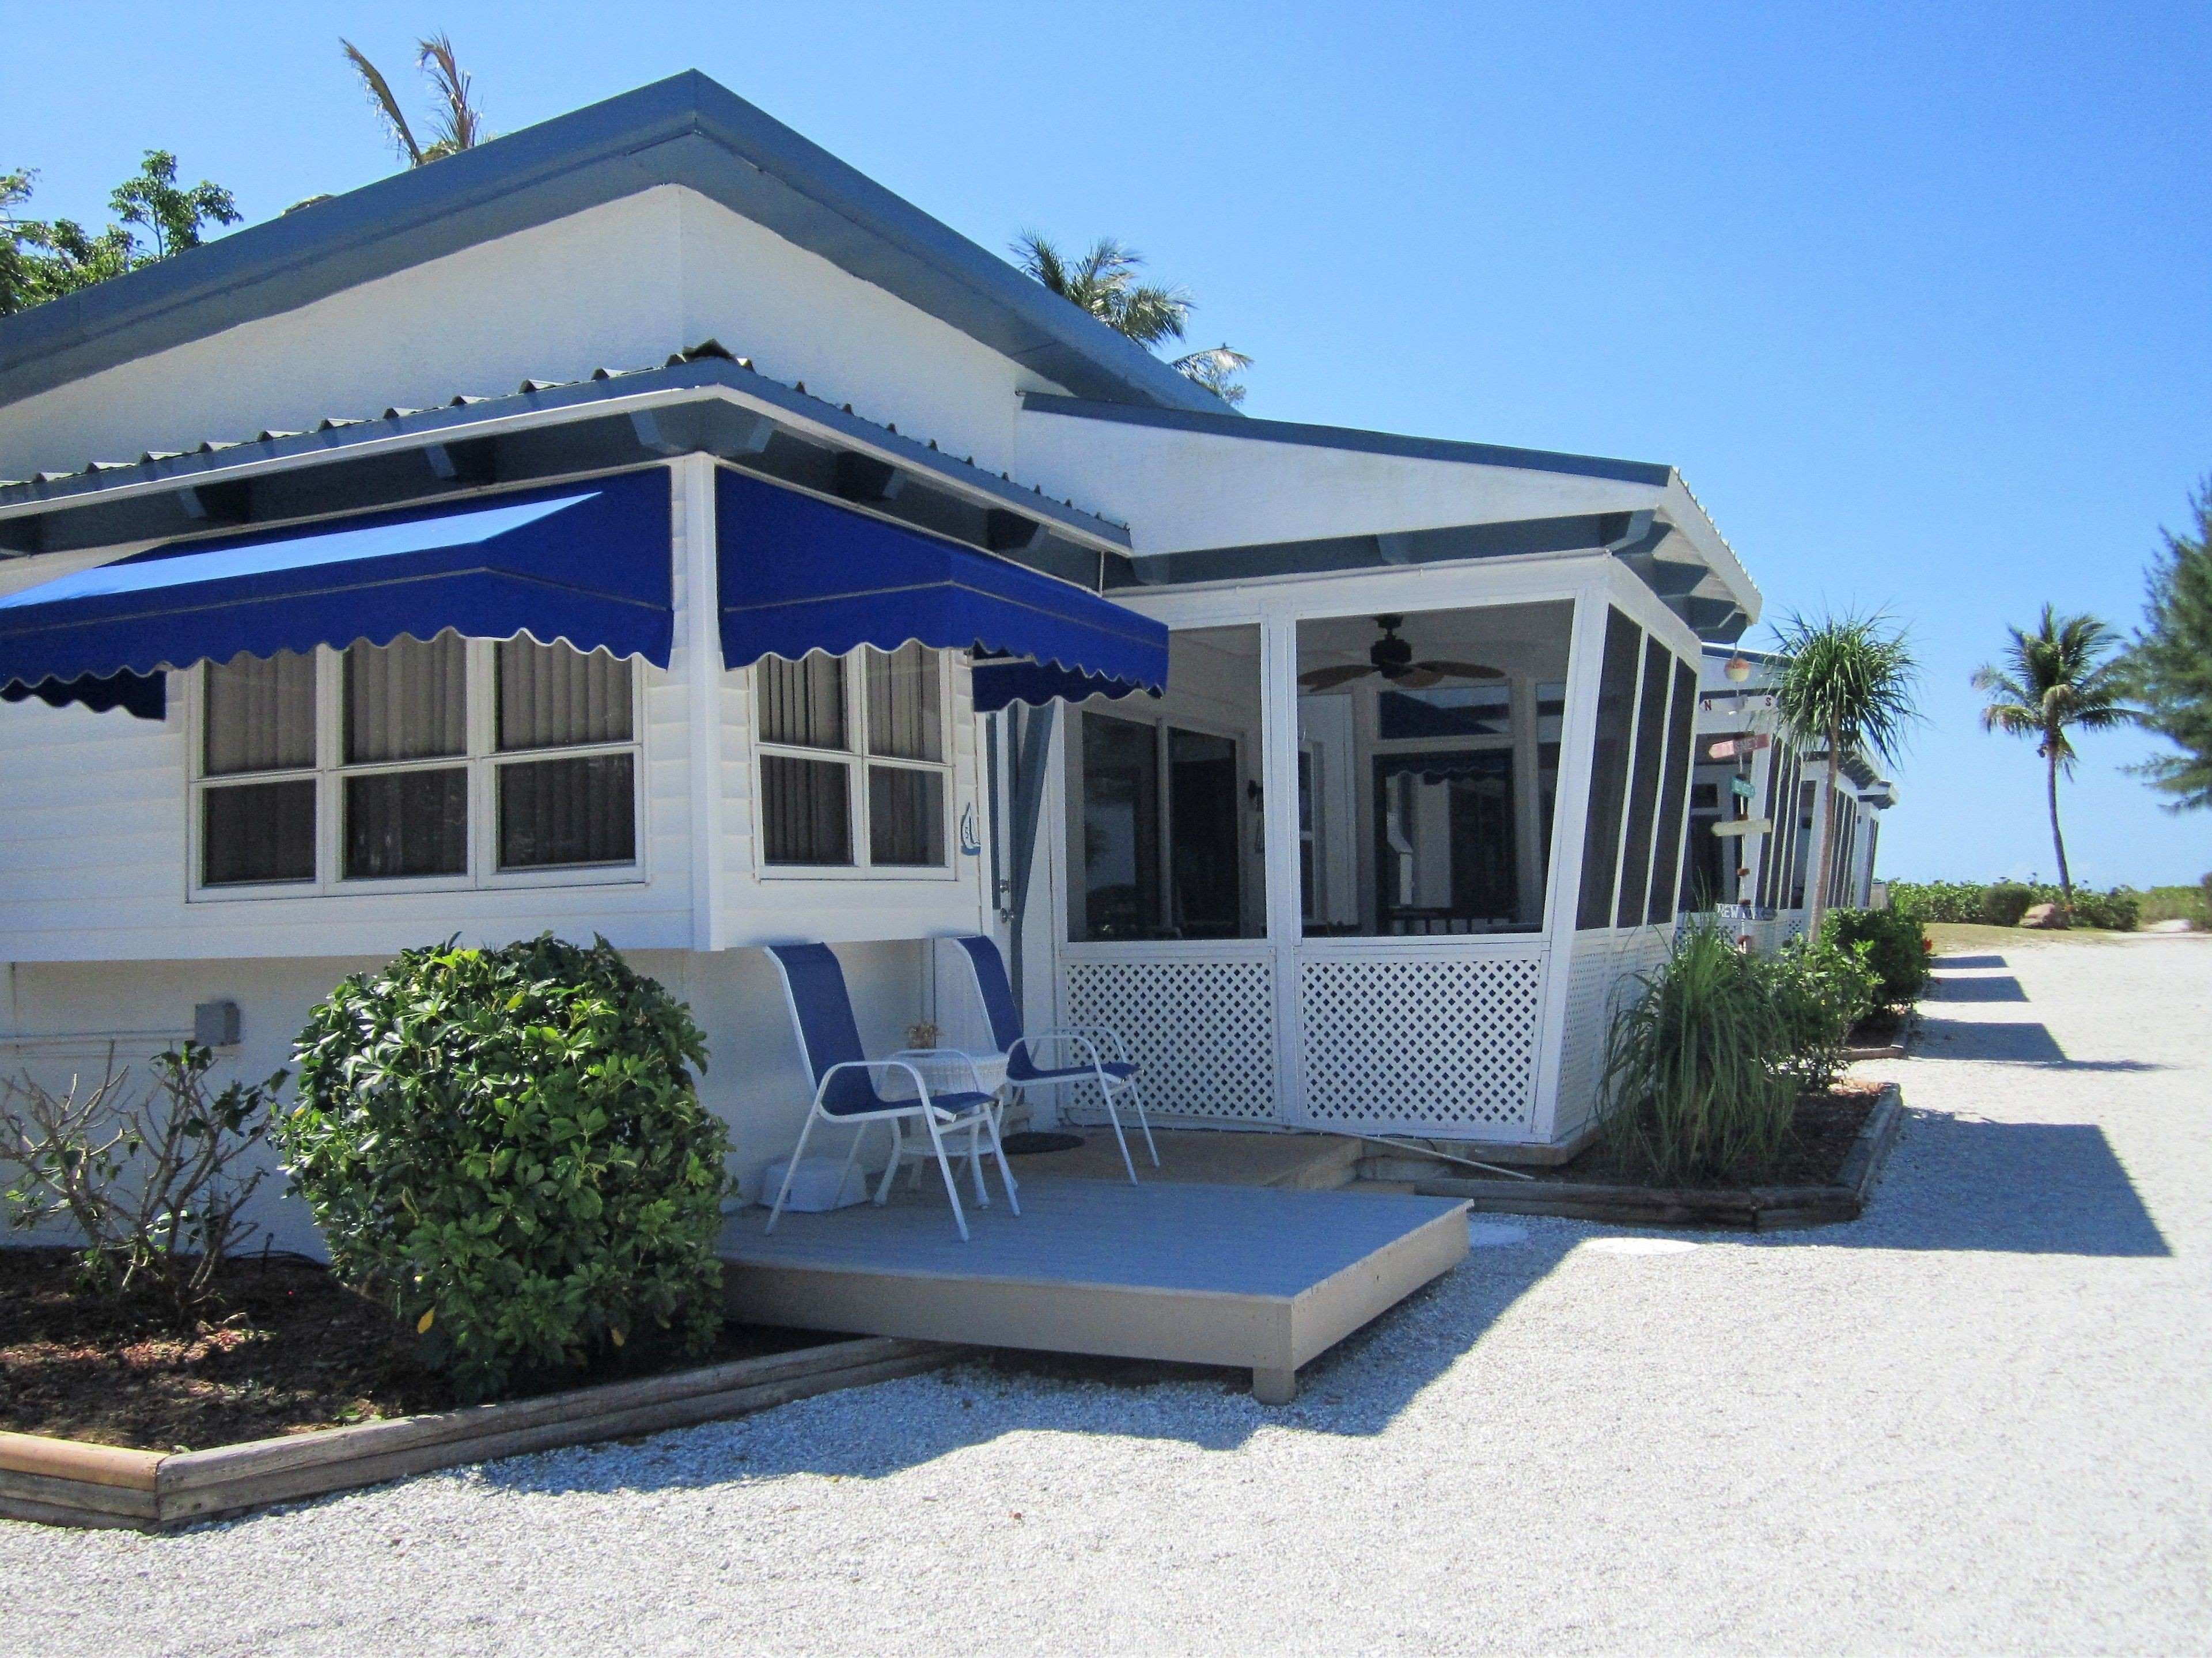 Courtesy of Tropical Winds Motel and Cottages / Expedia